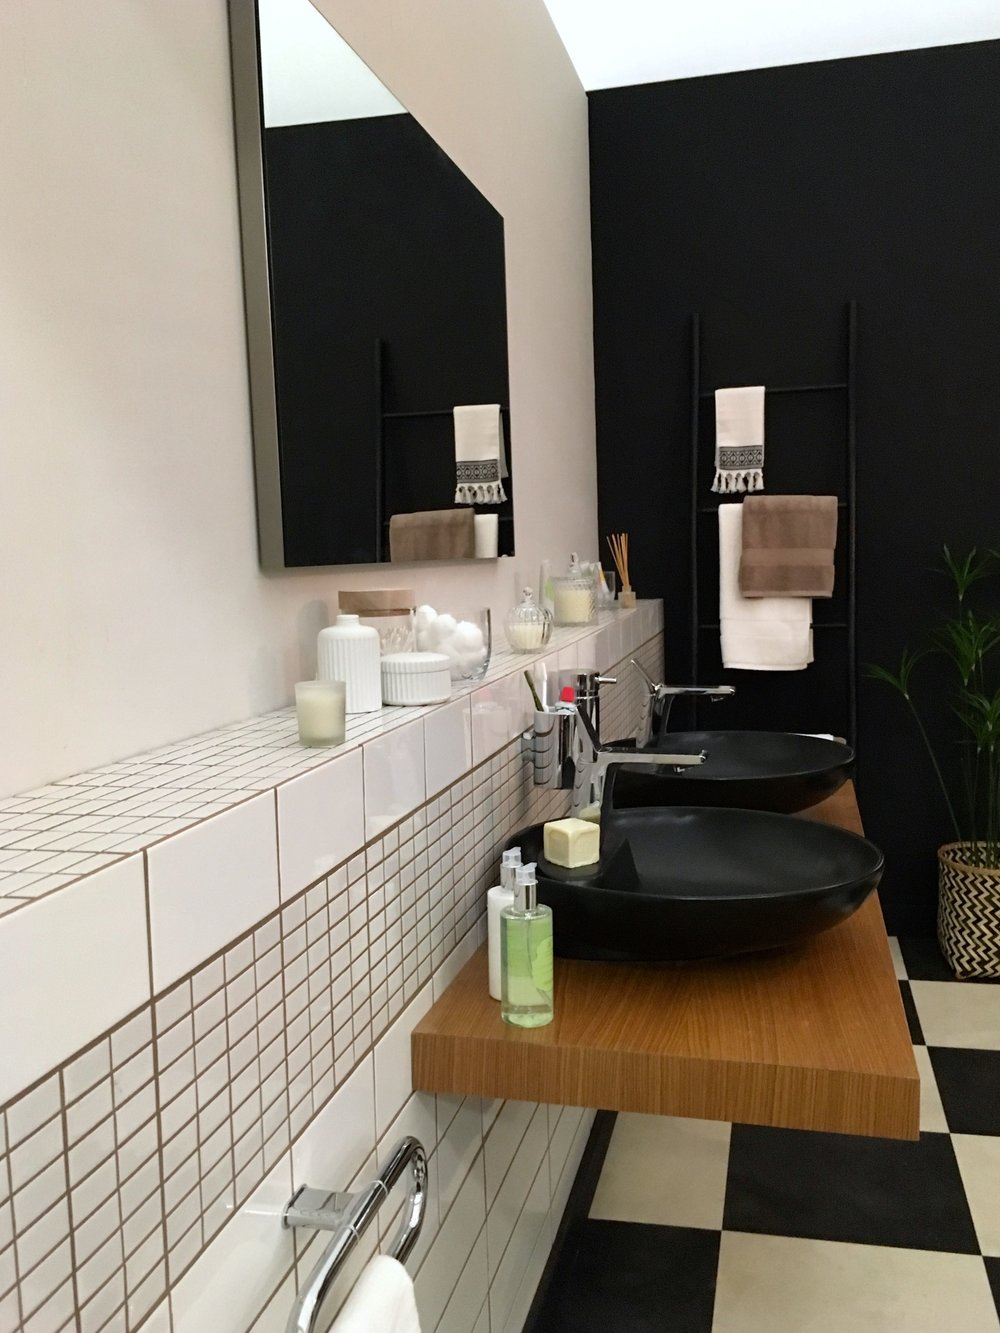 double black sinks in the bathroom room set at the Ideal Home show